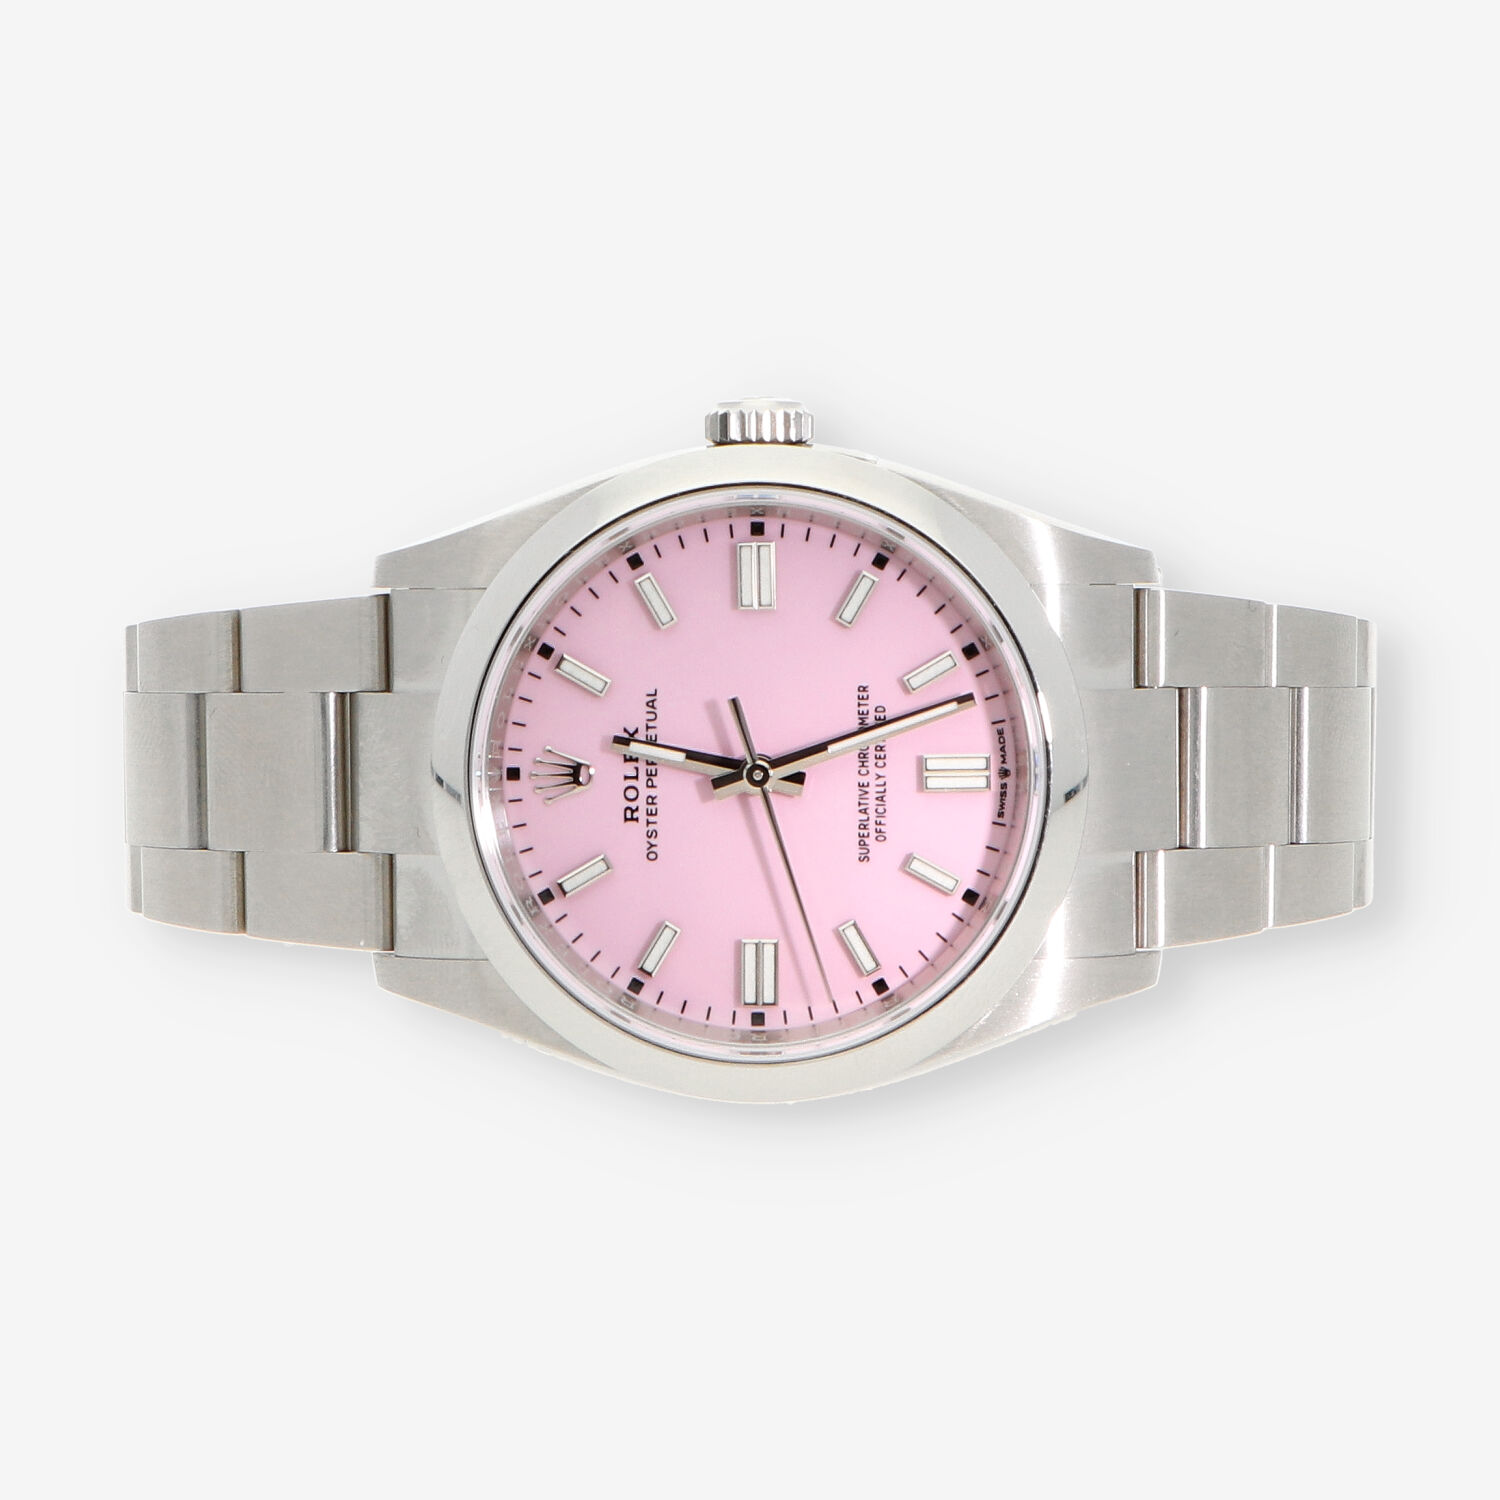 Rolex Oyster Perpetual 36 Candy Pink caja y documentos